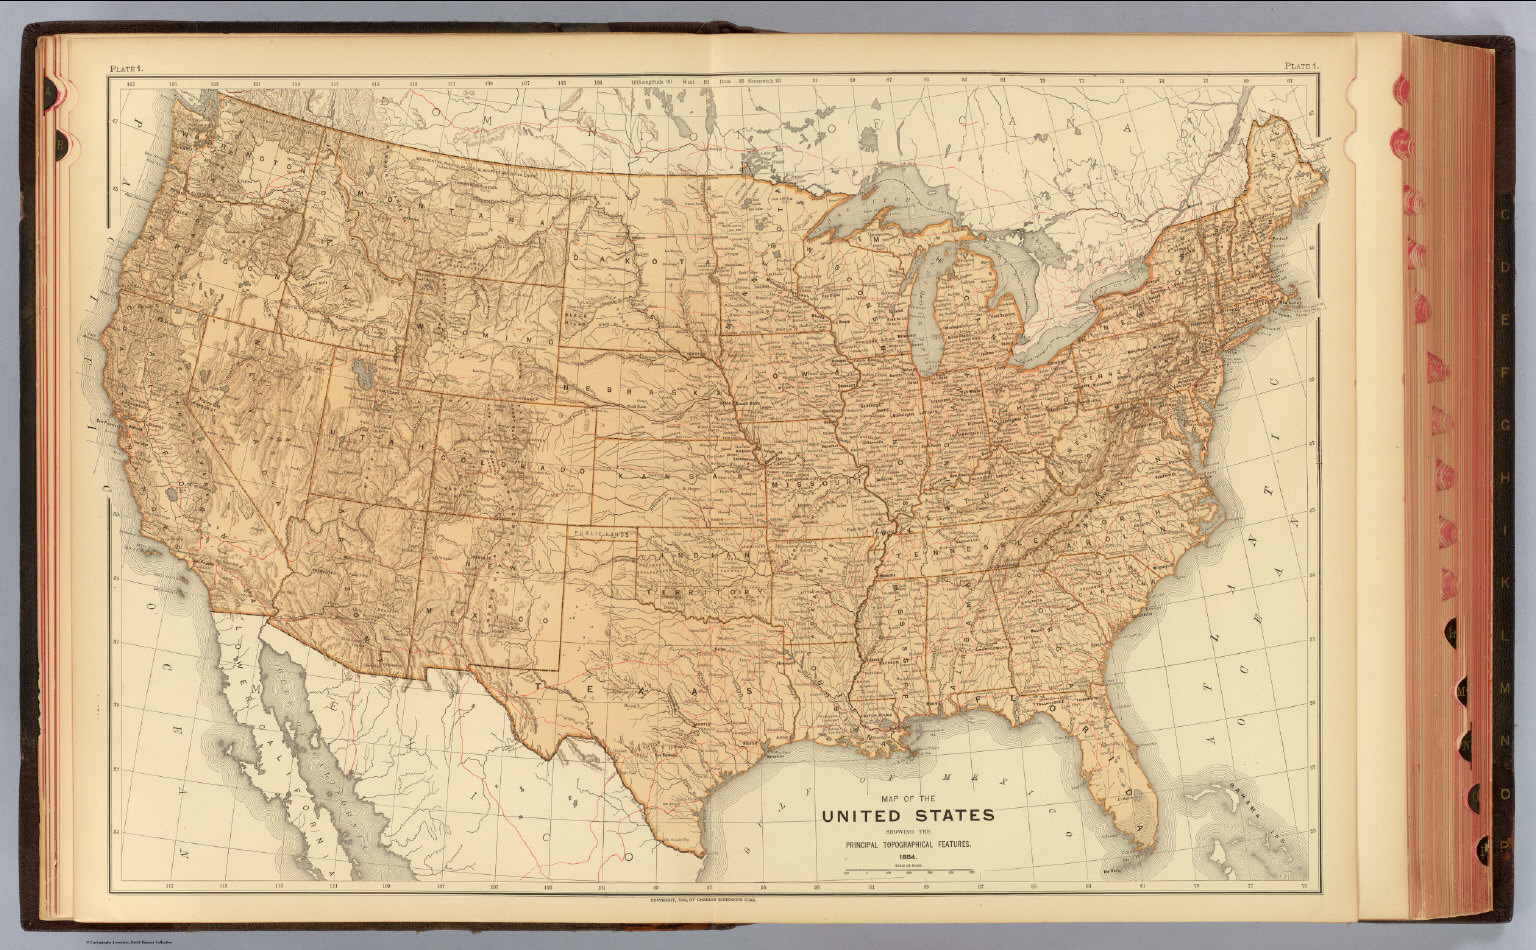 United States Topographical Features David Rumsey Historical - United states features